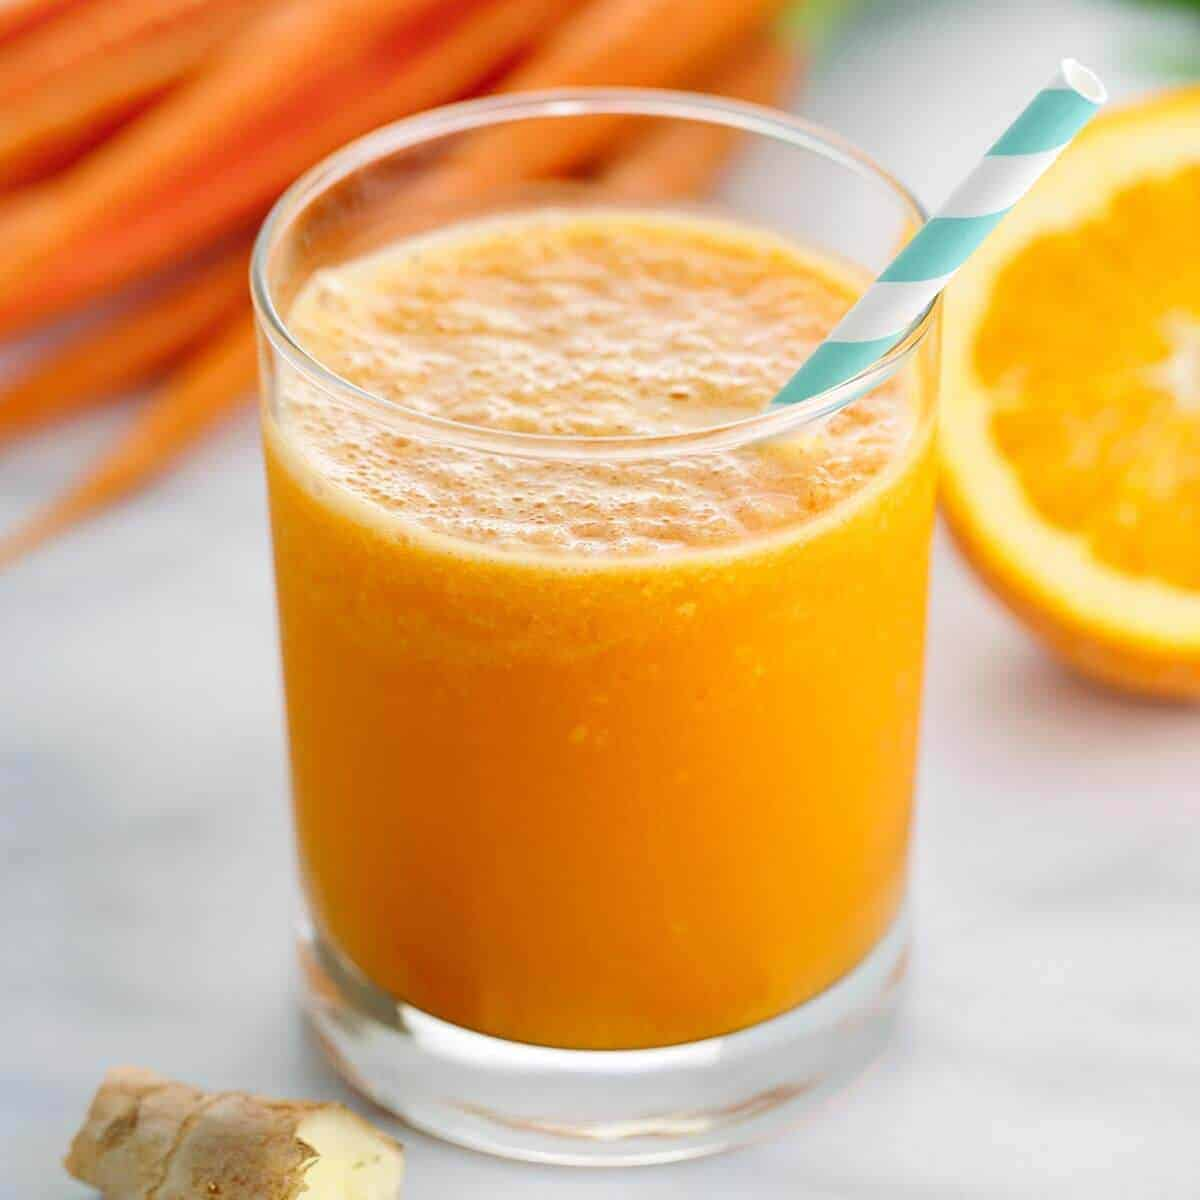 To boost immunity and weight Loss: Drink this orange and turmeric smoothie